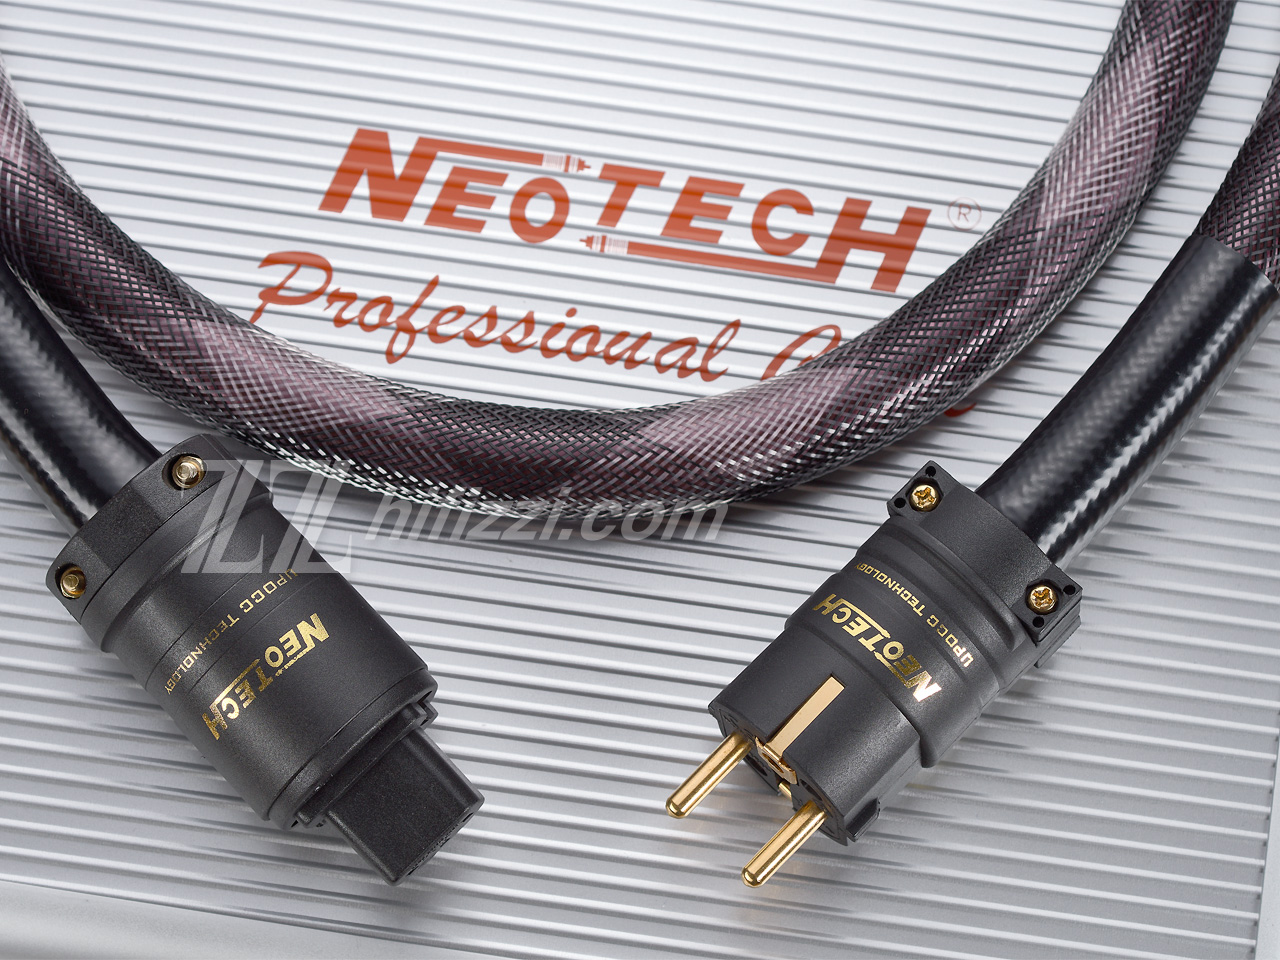 Neotech The Sahara power cable 1.5m — Фото 4